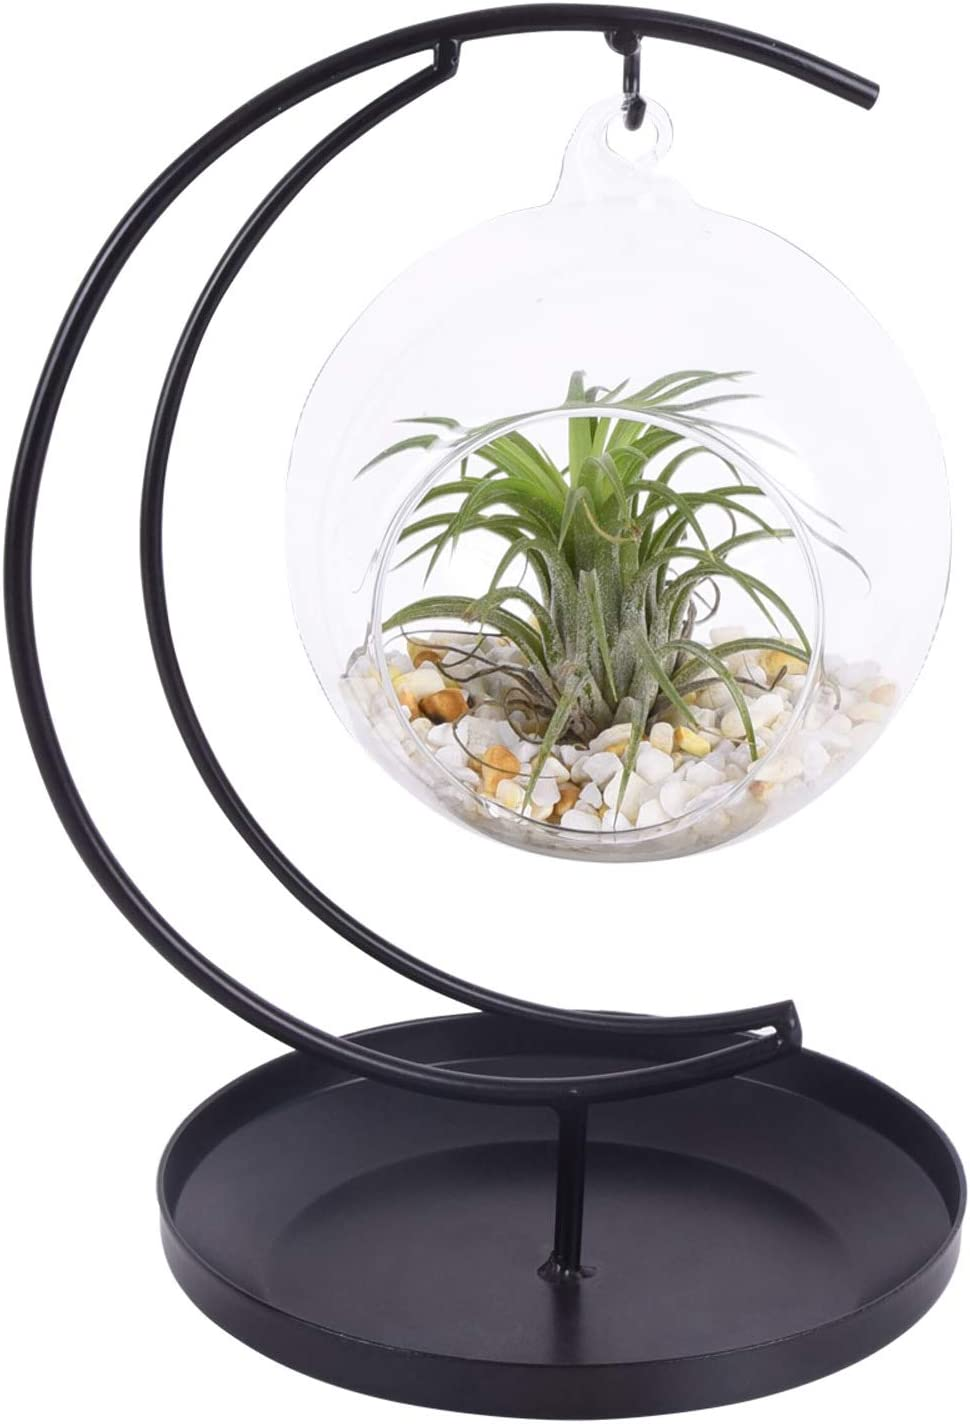 AUTOARK Glass Vase Plant Terrarium with Black Metal Tray Stand,Ornament Display Stand,Office Desktop Potted Stand,Home & Office Decor Accent,Moon Shape Design,1 Globe,APT-014